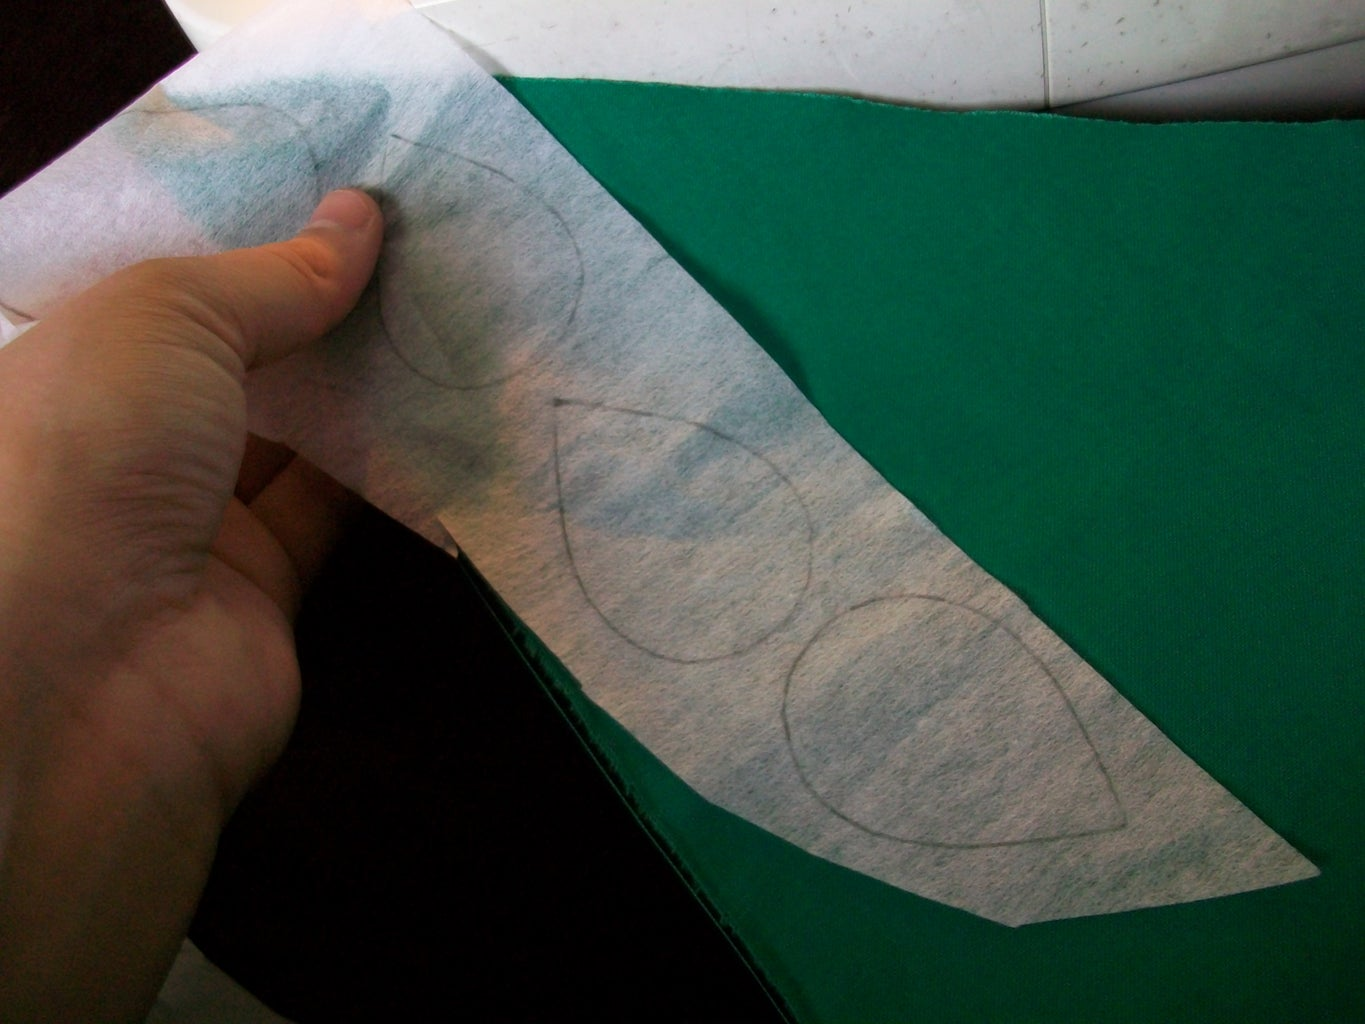 Step 2 - Sewing the Fabric Pieces